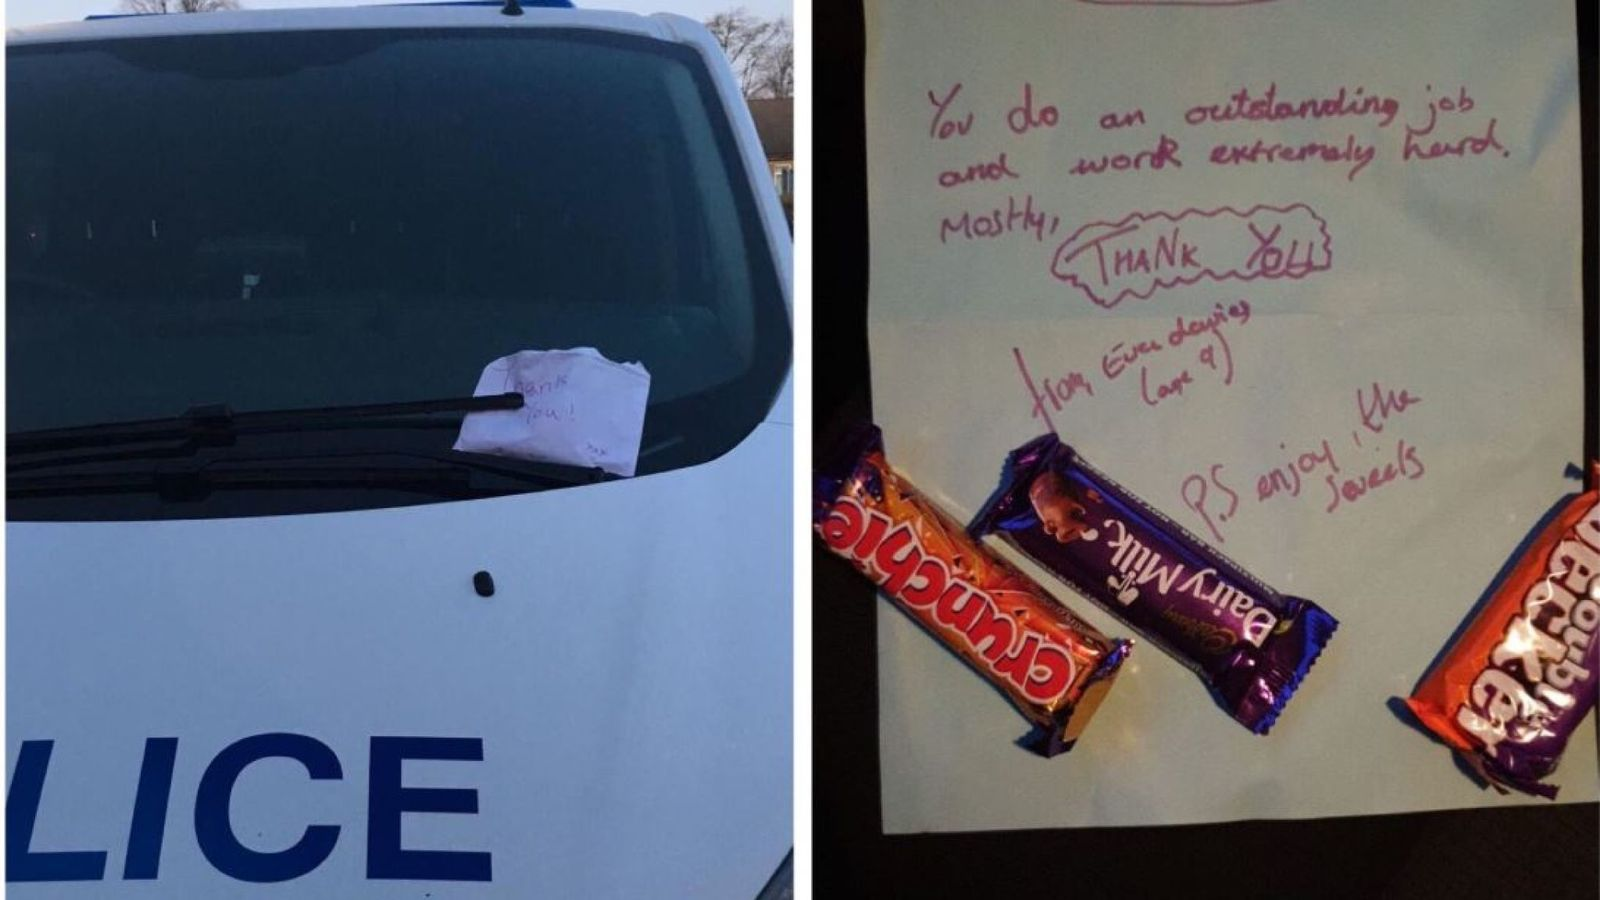 A sweet gesture: Girl, 9, gives thank you notes and chocolates to police